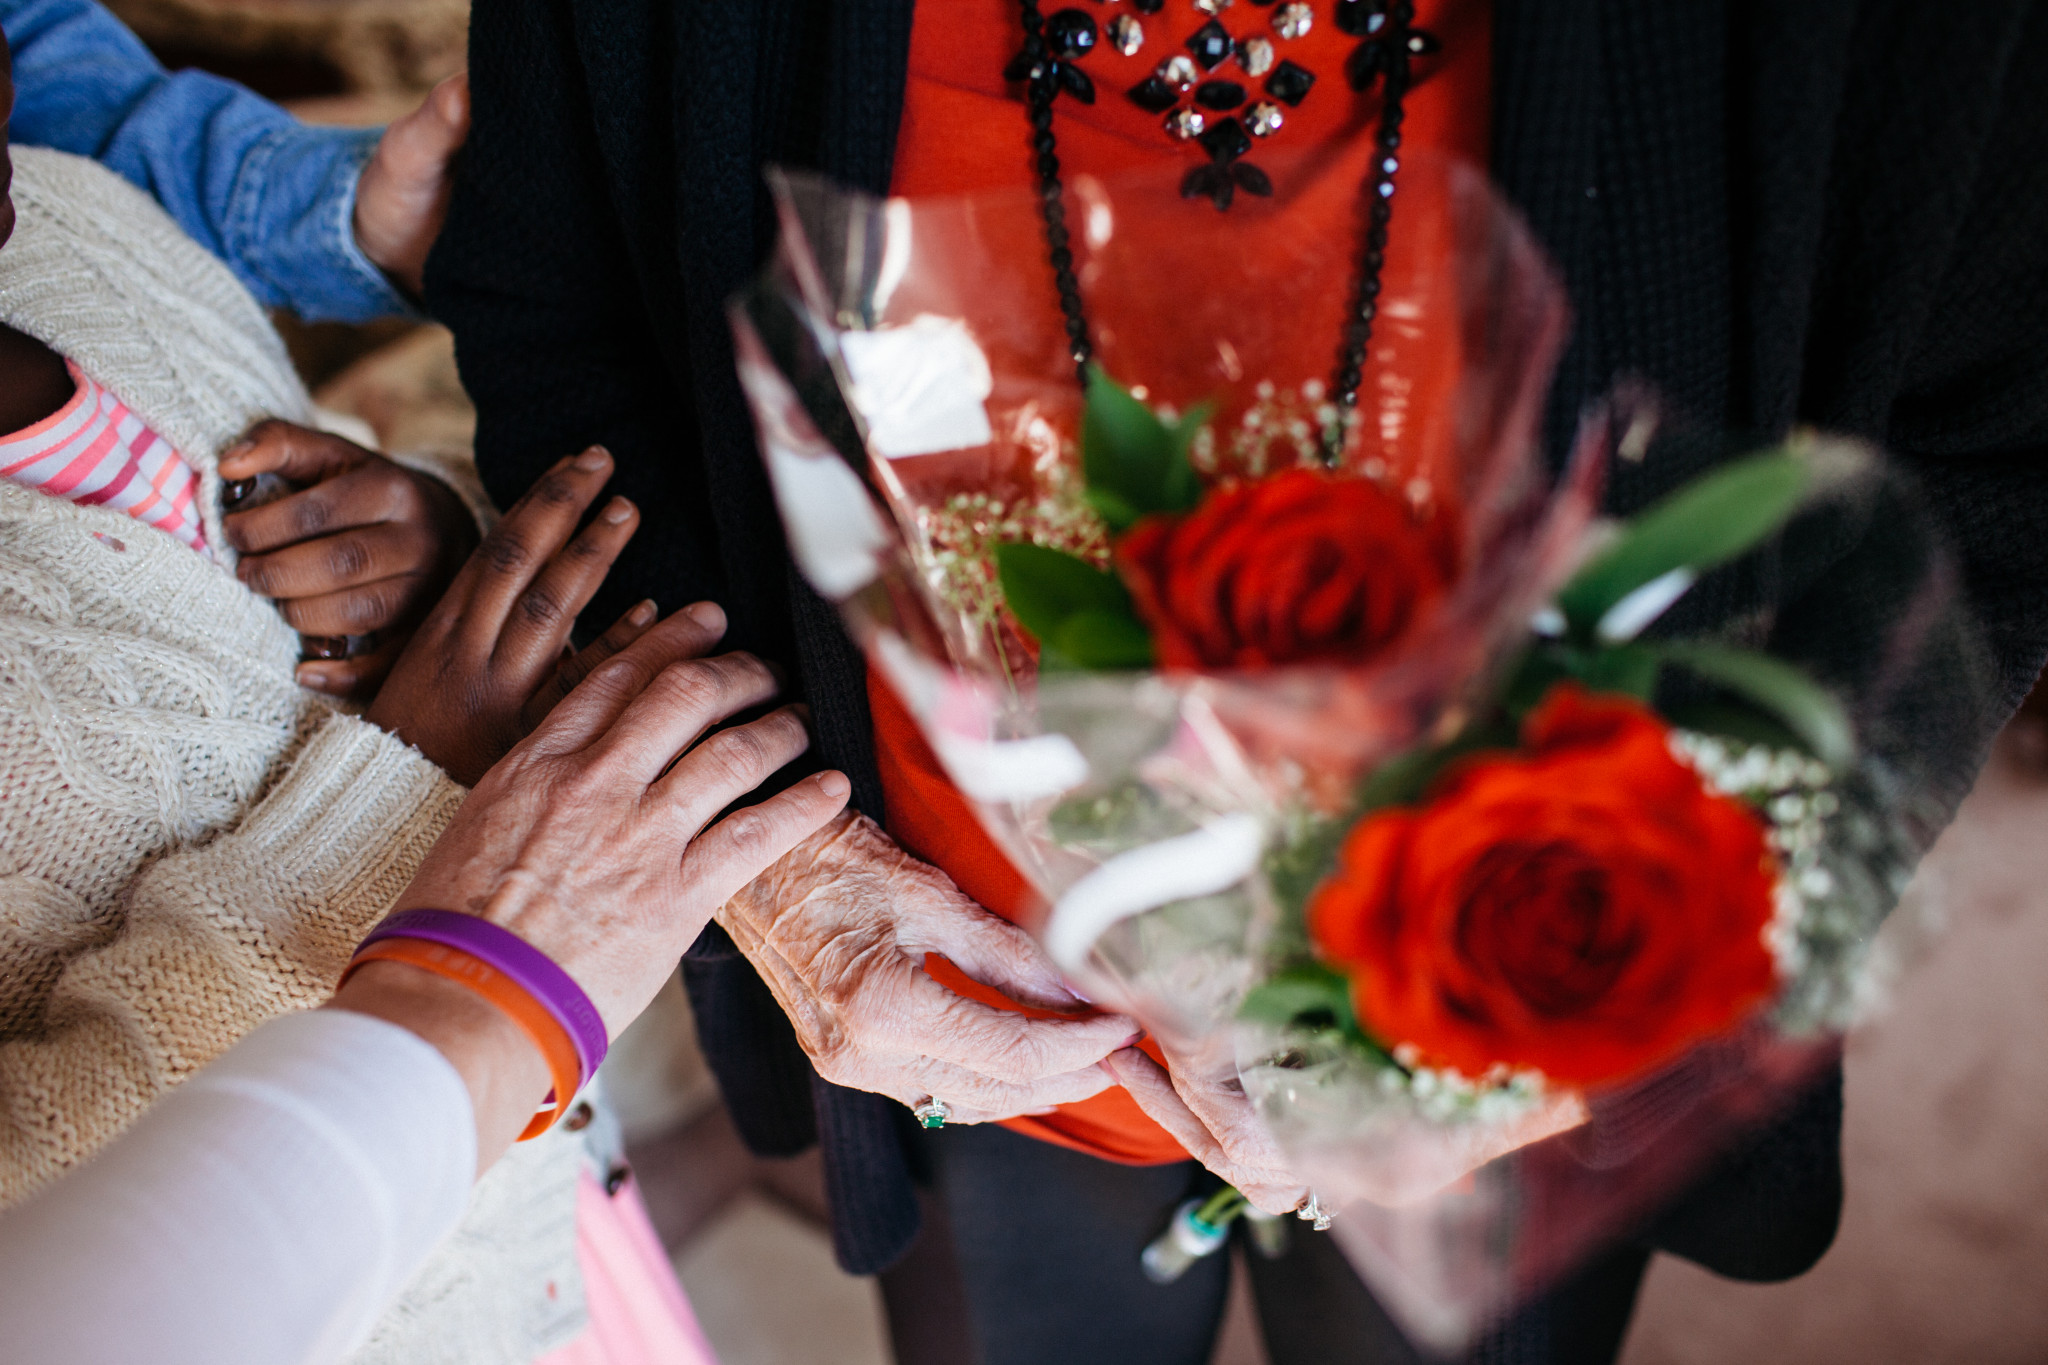 Volunteers pray with a local widow after delivering roses for Valentine's Day 2016.